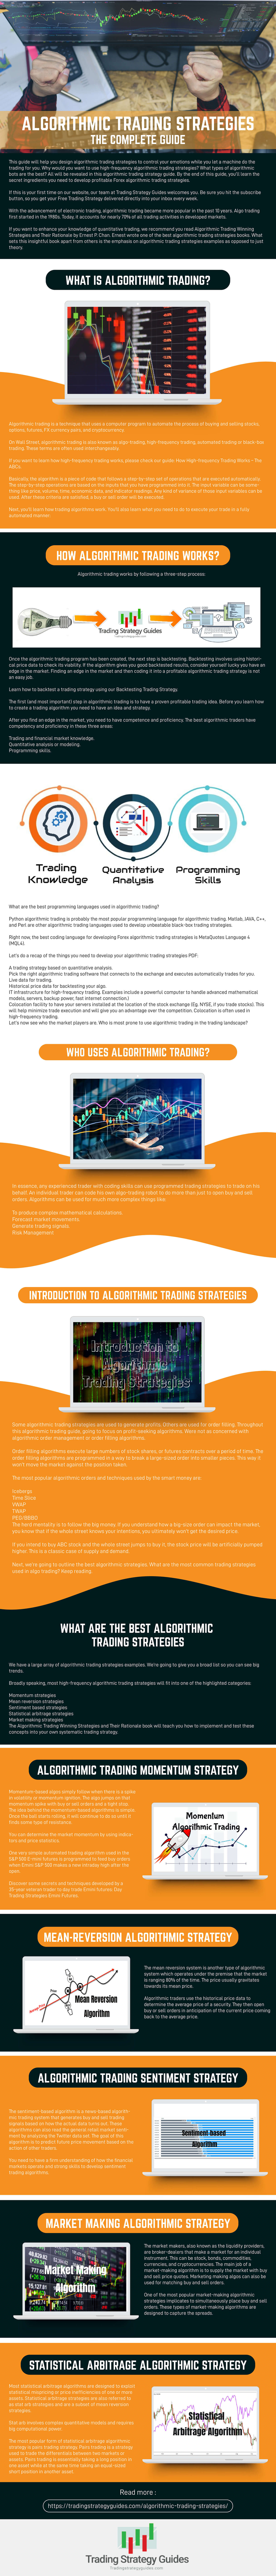 algorithmic trading strategy